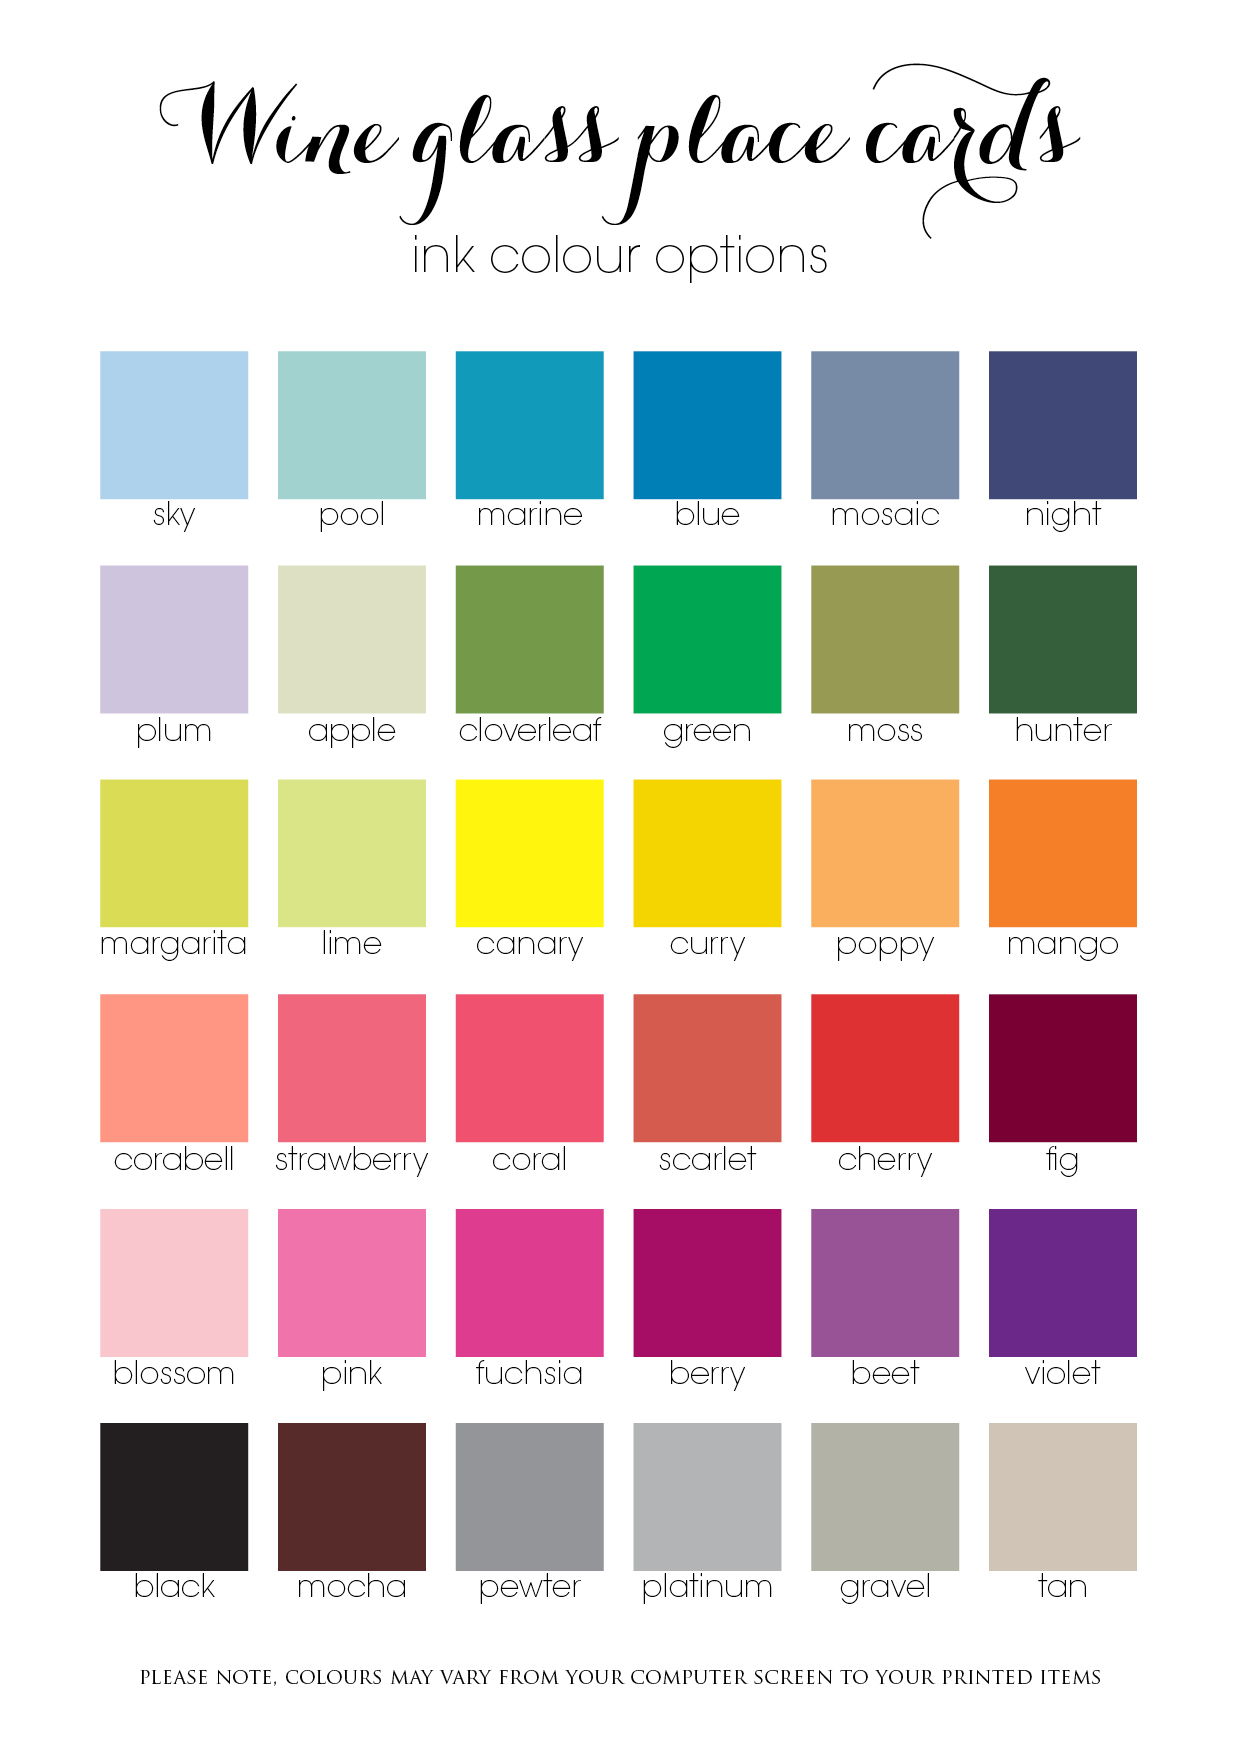 Wineglass Place card_Ink Colour Chart